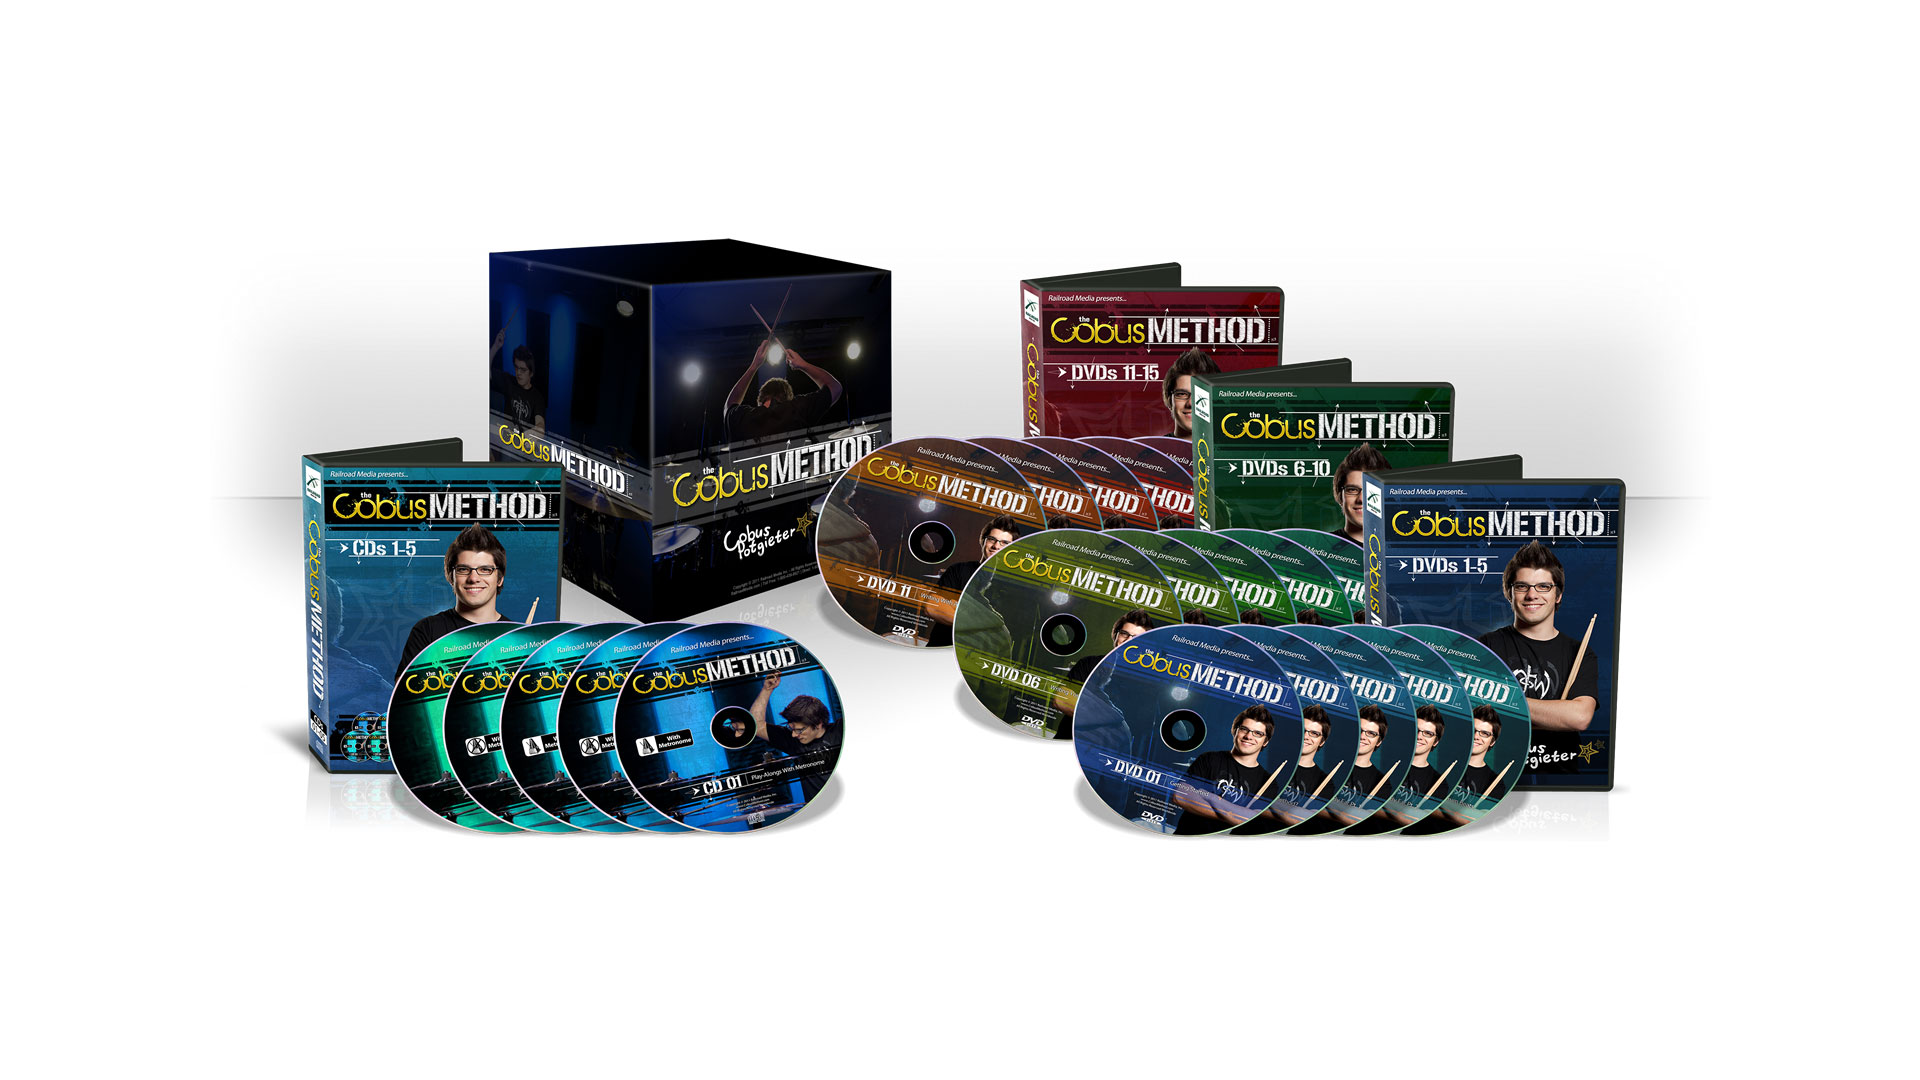 Cobus Method Promo Codes June 2019